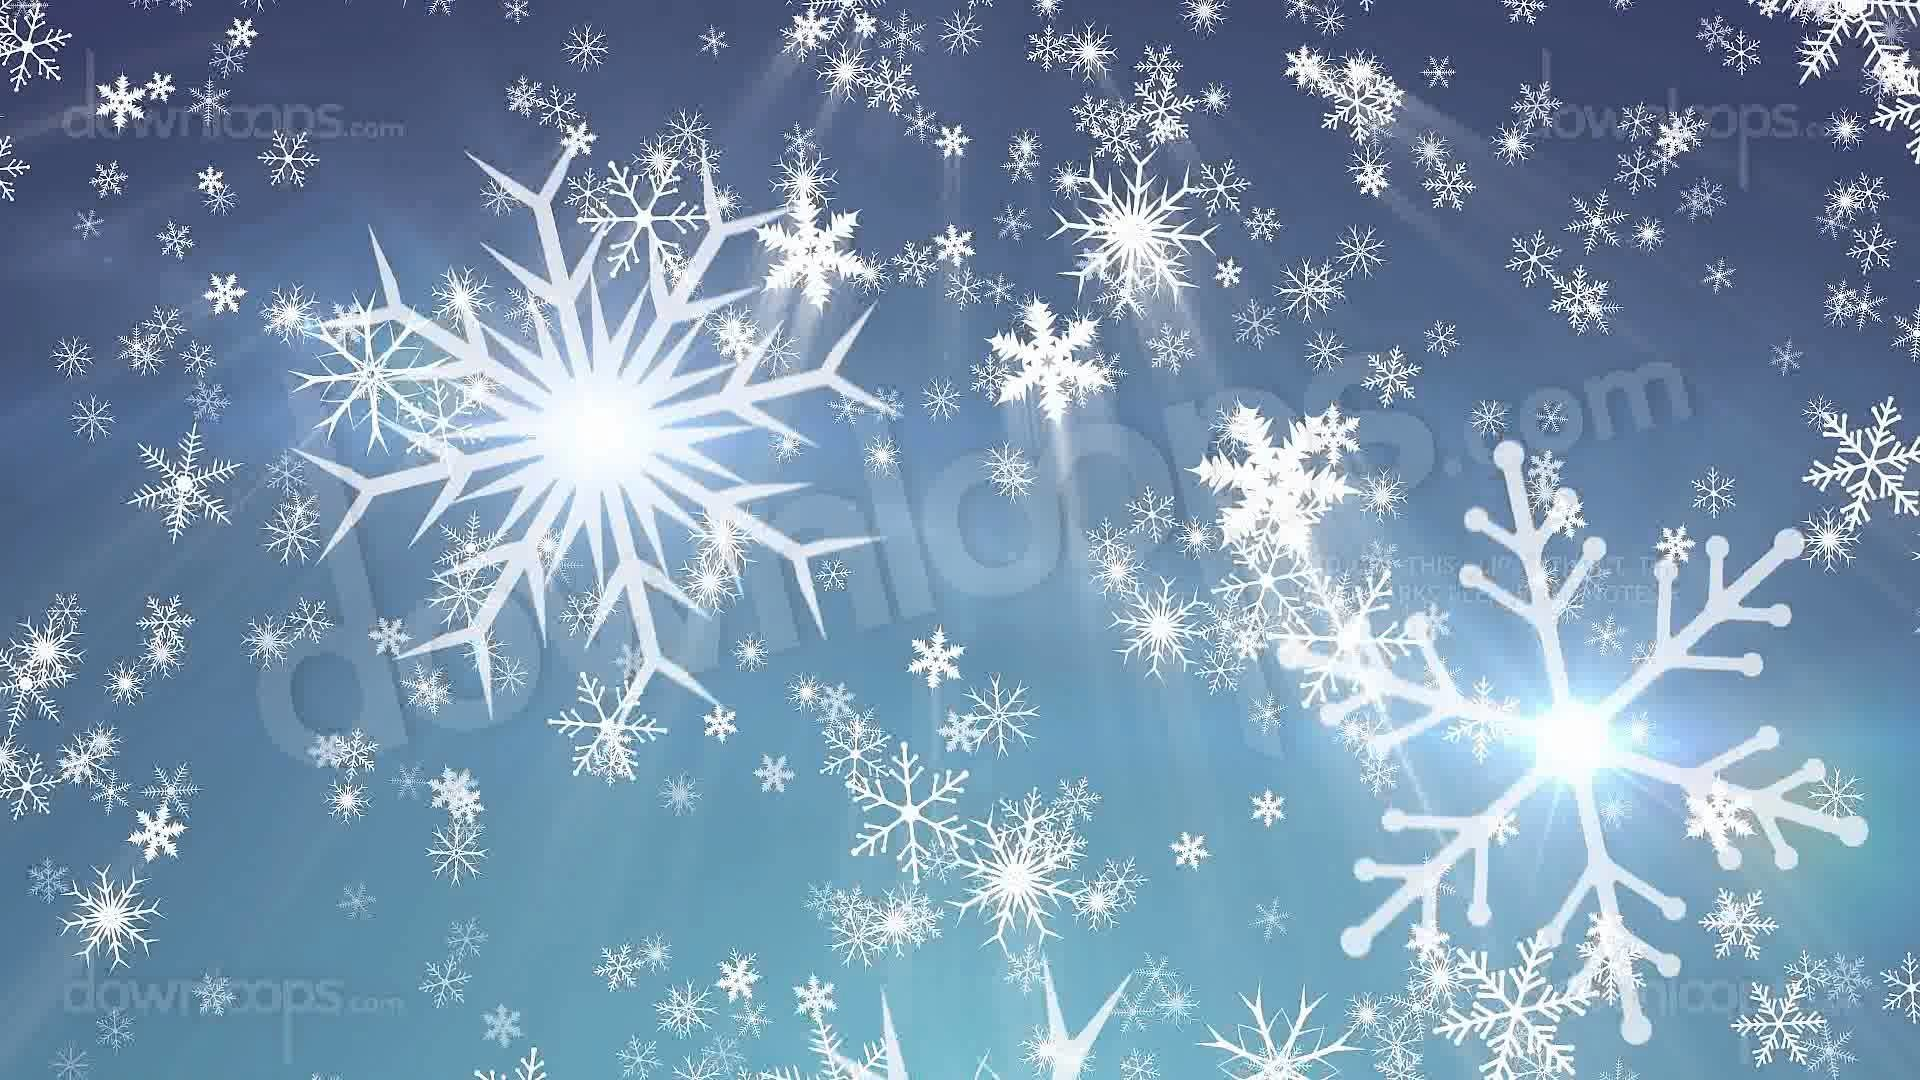 Live Snow Falling Wallpaper For Desktop Falling Snow Animated Wallpaper 57 Images